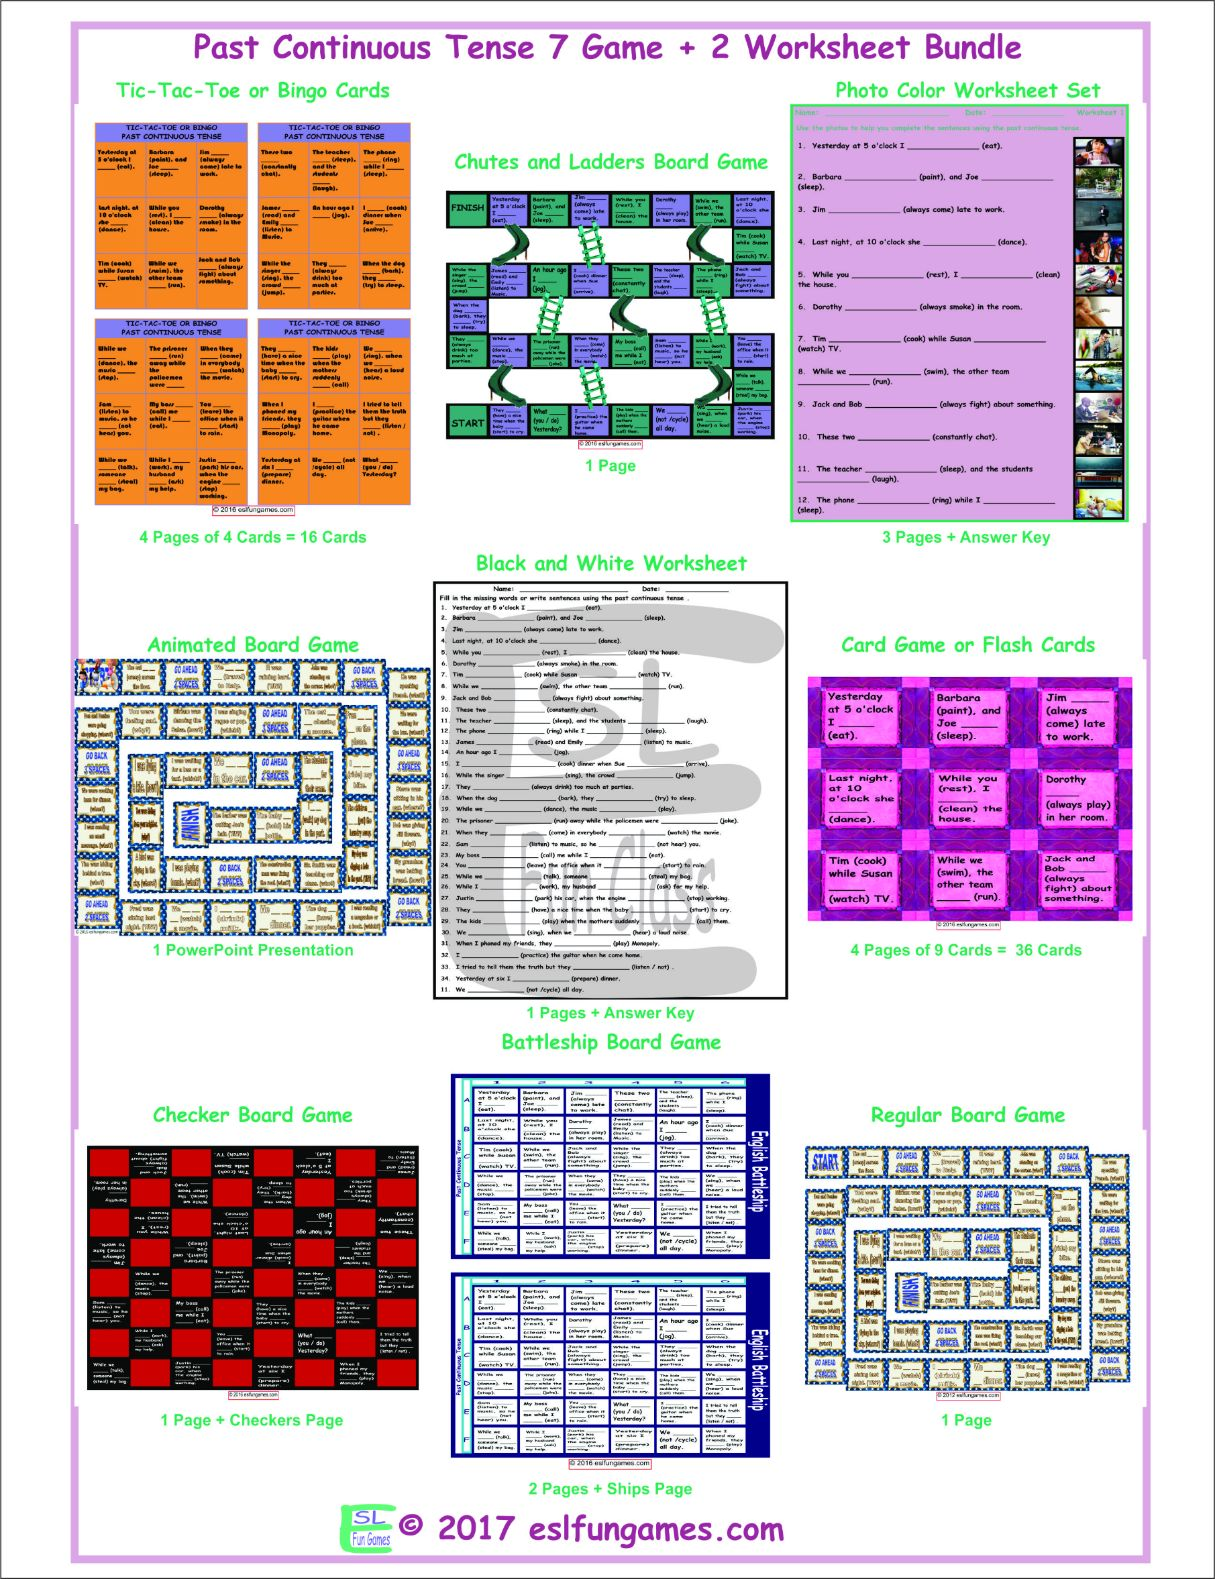 Past Continuous Tense 7 Game Plus 2 Worksheet Bundle By